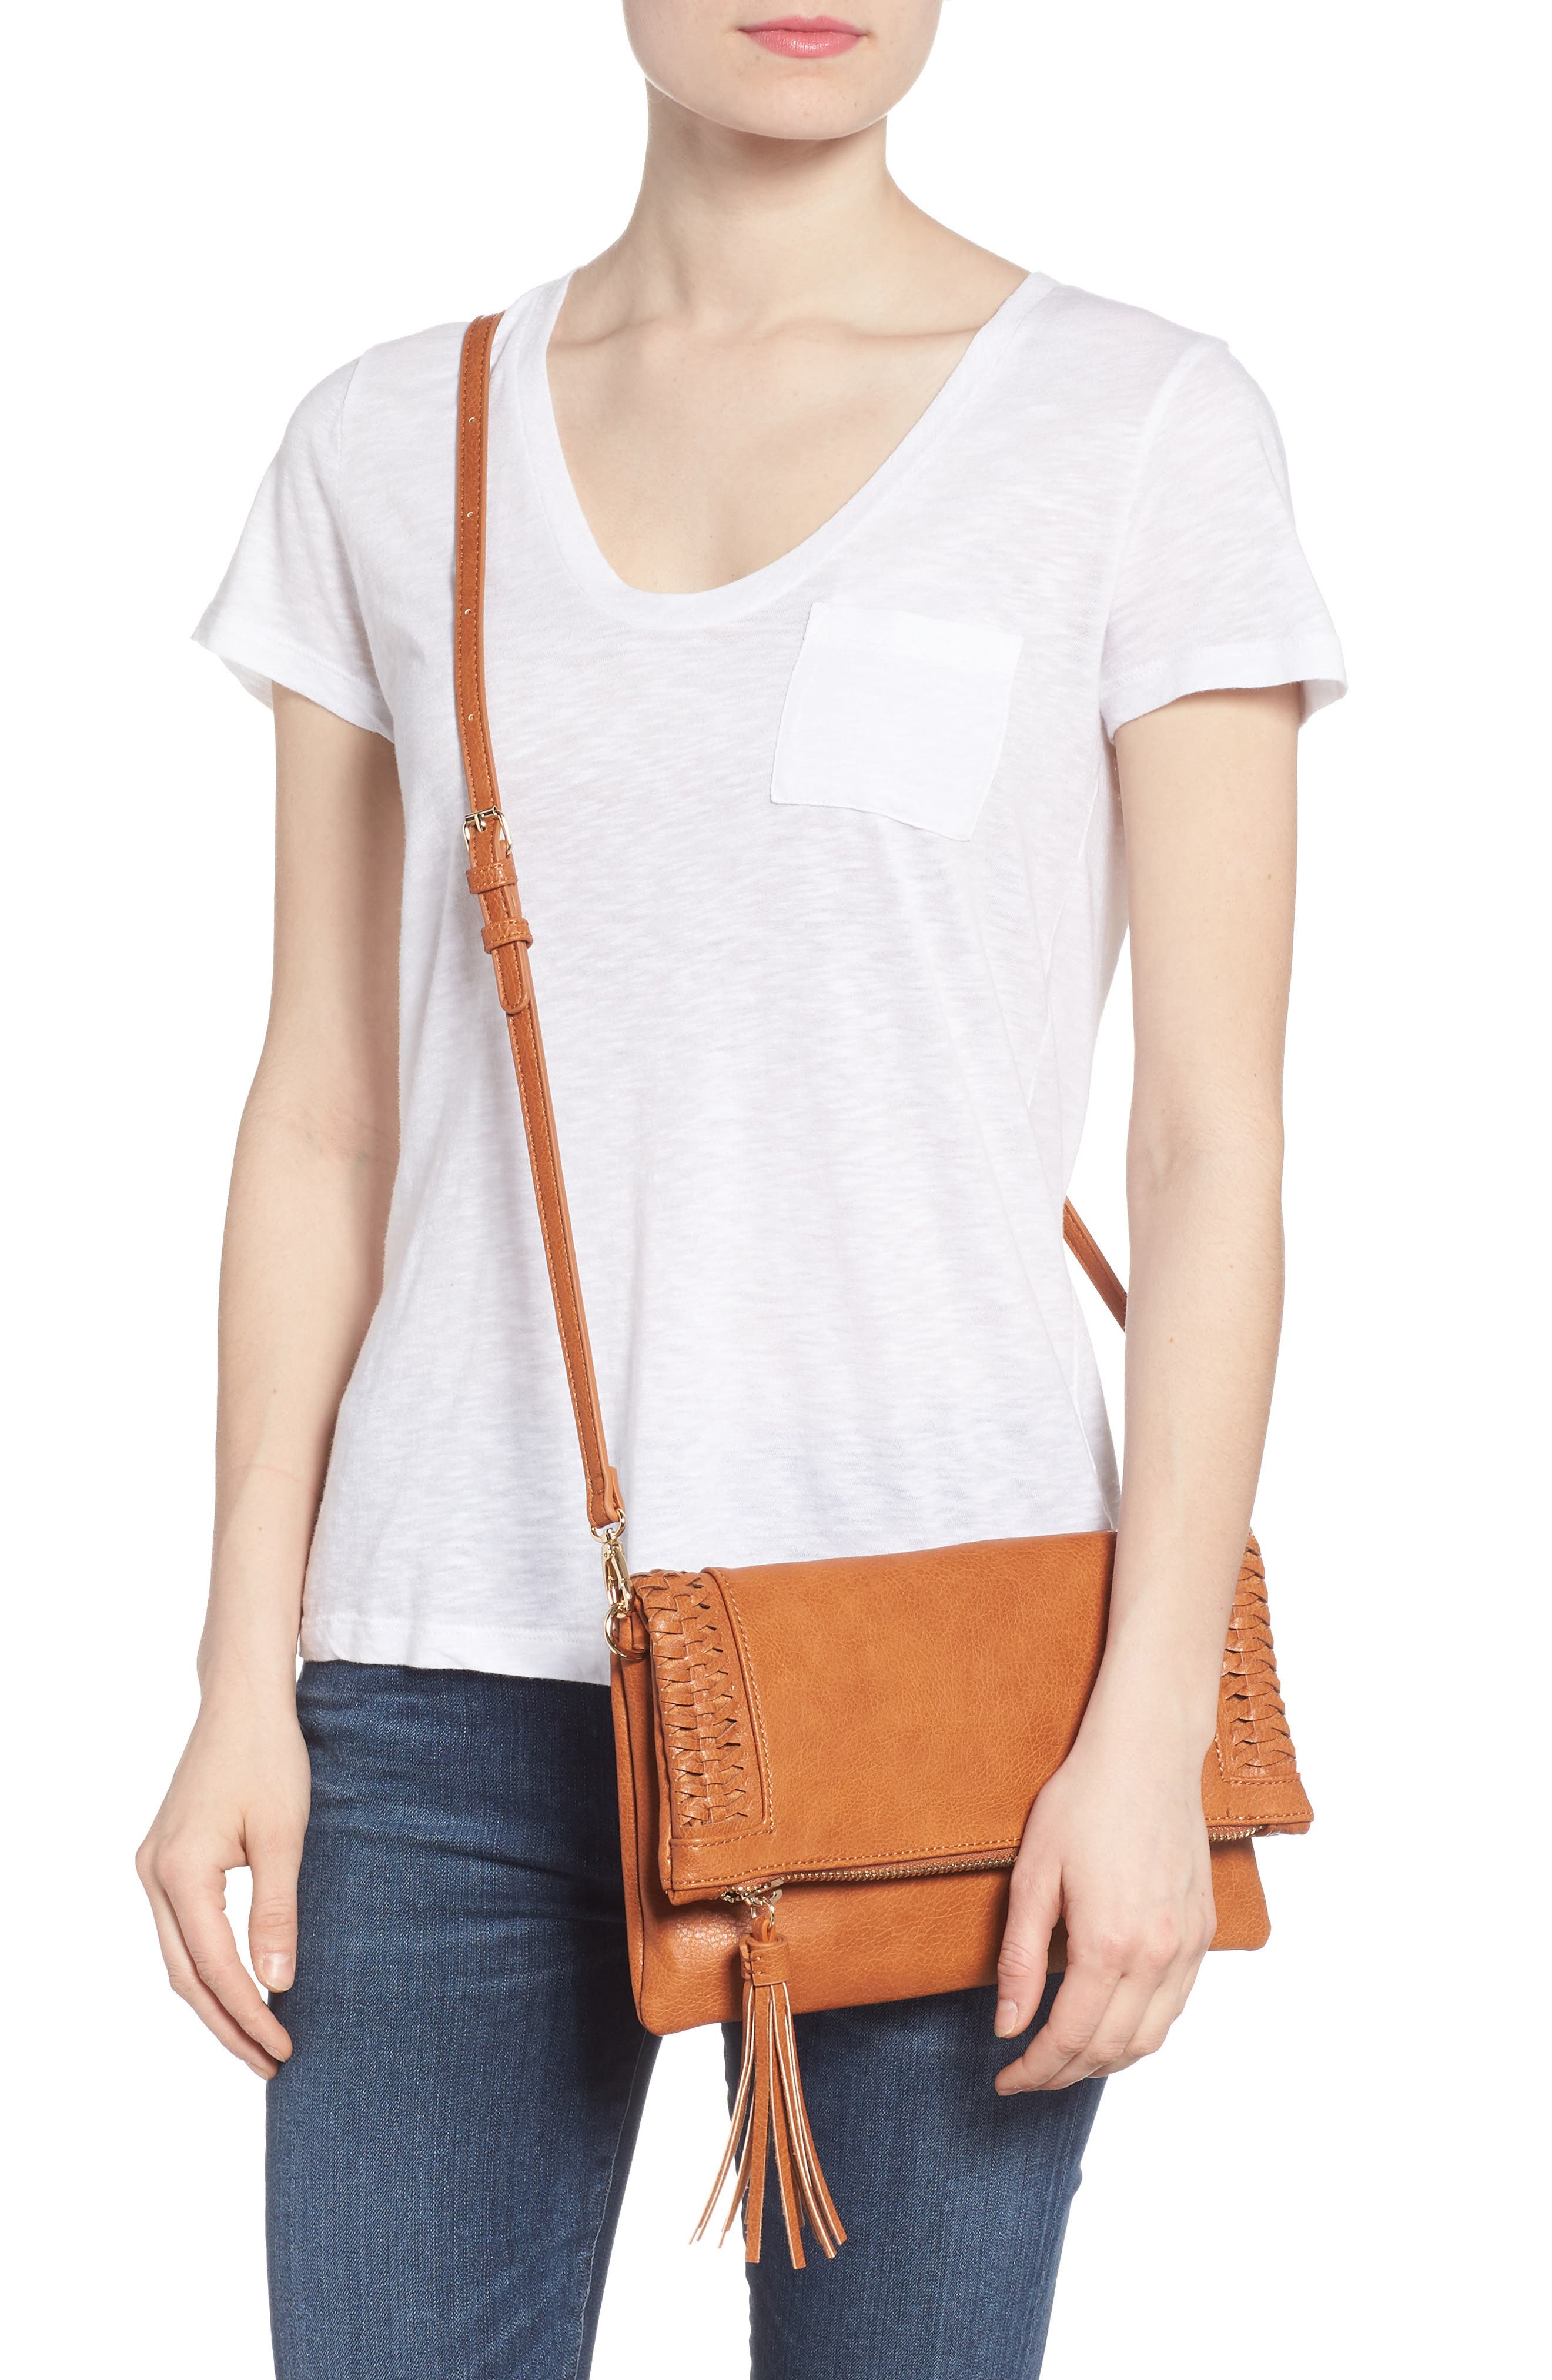 Tara Whipstitched Faux Leather Clutch,                             Alternate thumbnail 2, color,                             230